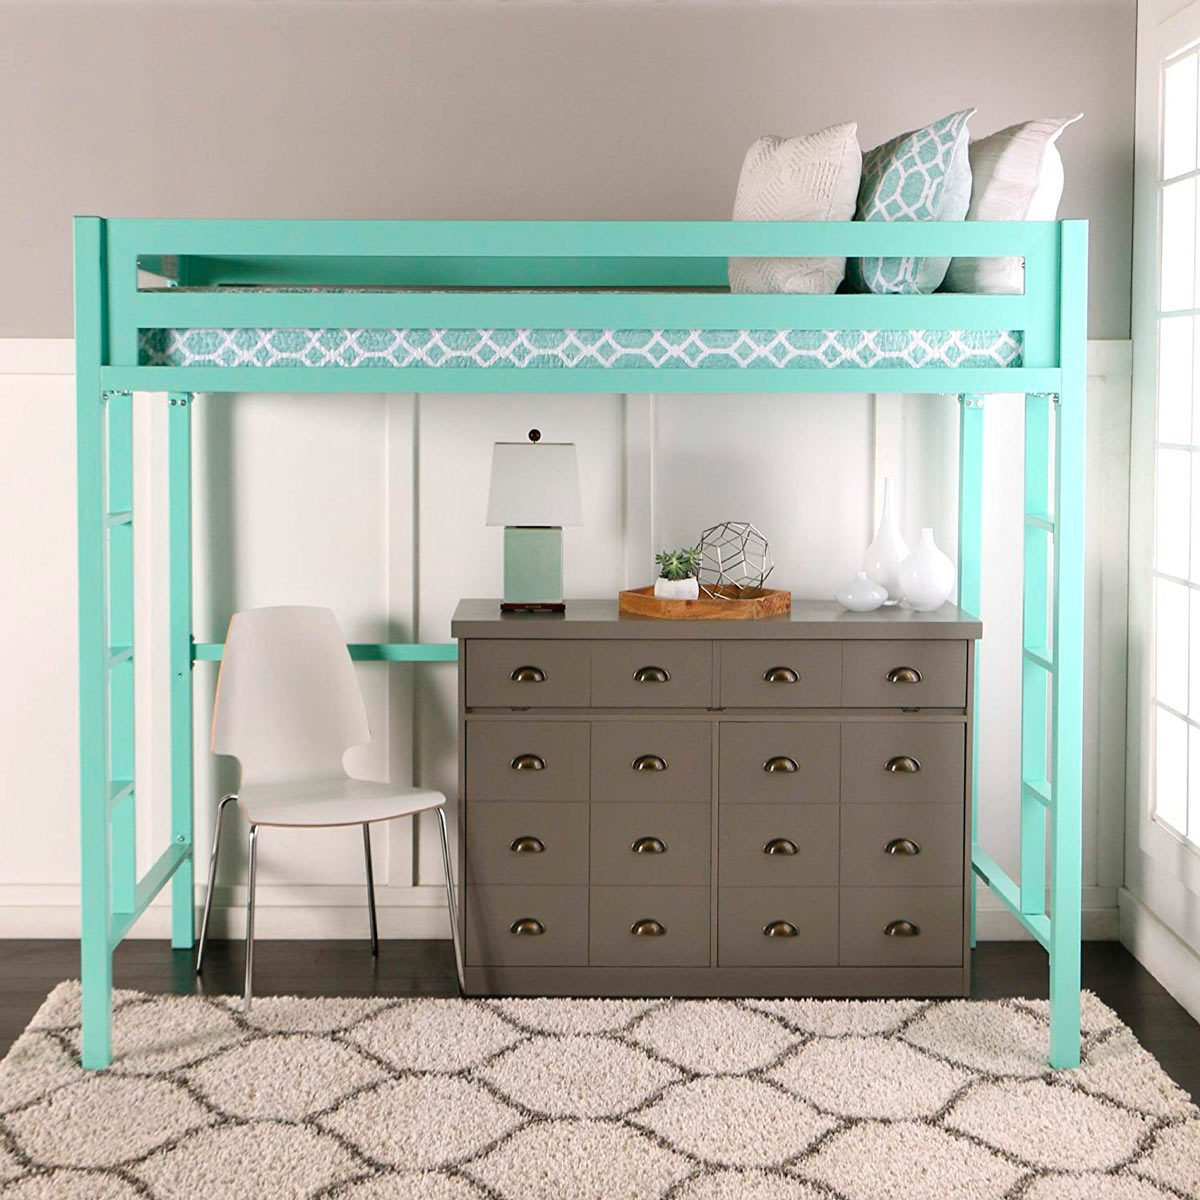 10 Kids Bedroom Ideas for Small Rooms | Family Handyman on Ideas For Small Rooms  id=58367